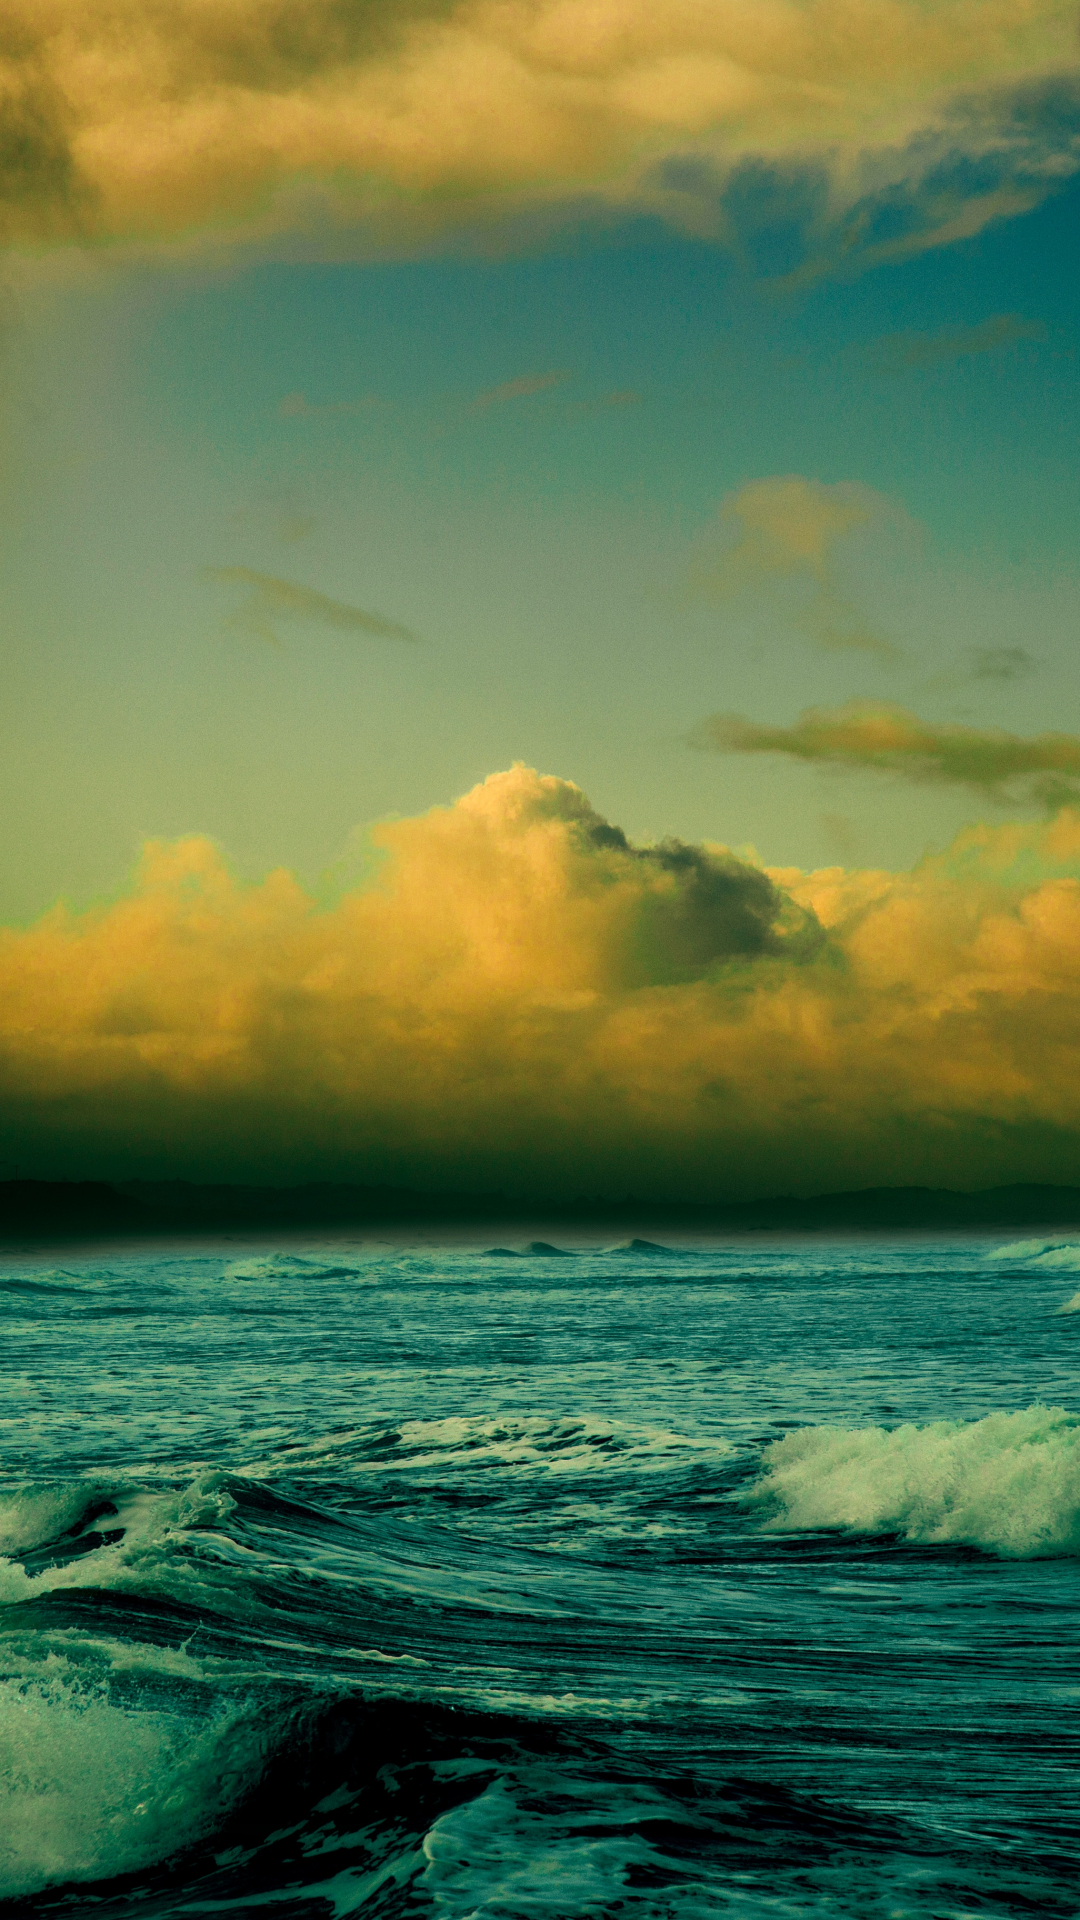 Cloud, Ocean, Water And Sea iPhone Wallpaper